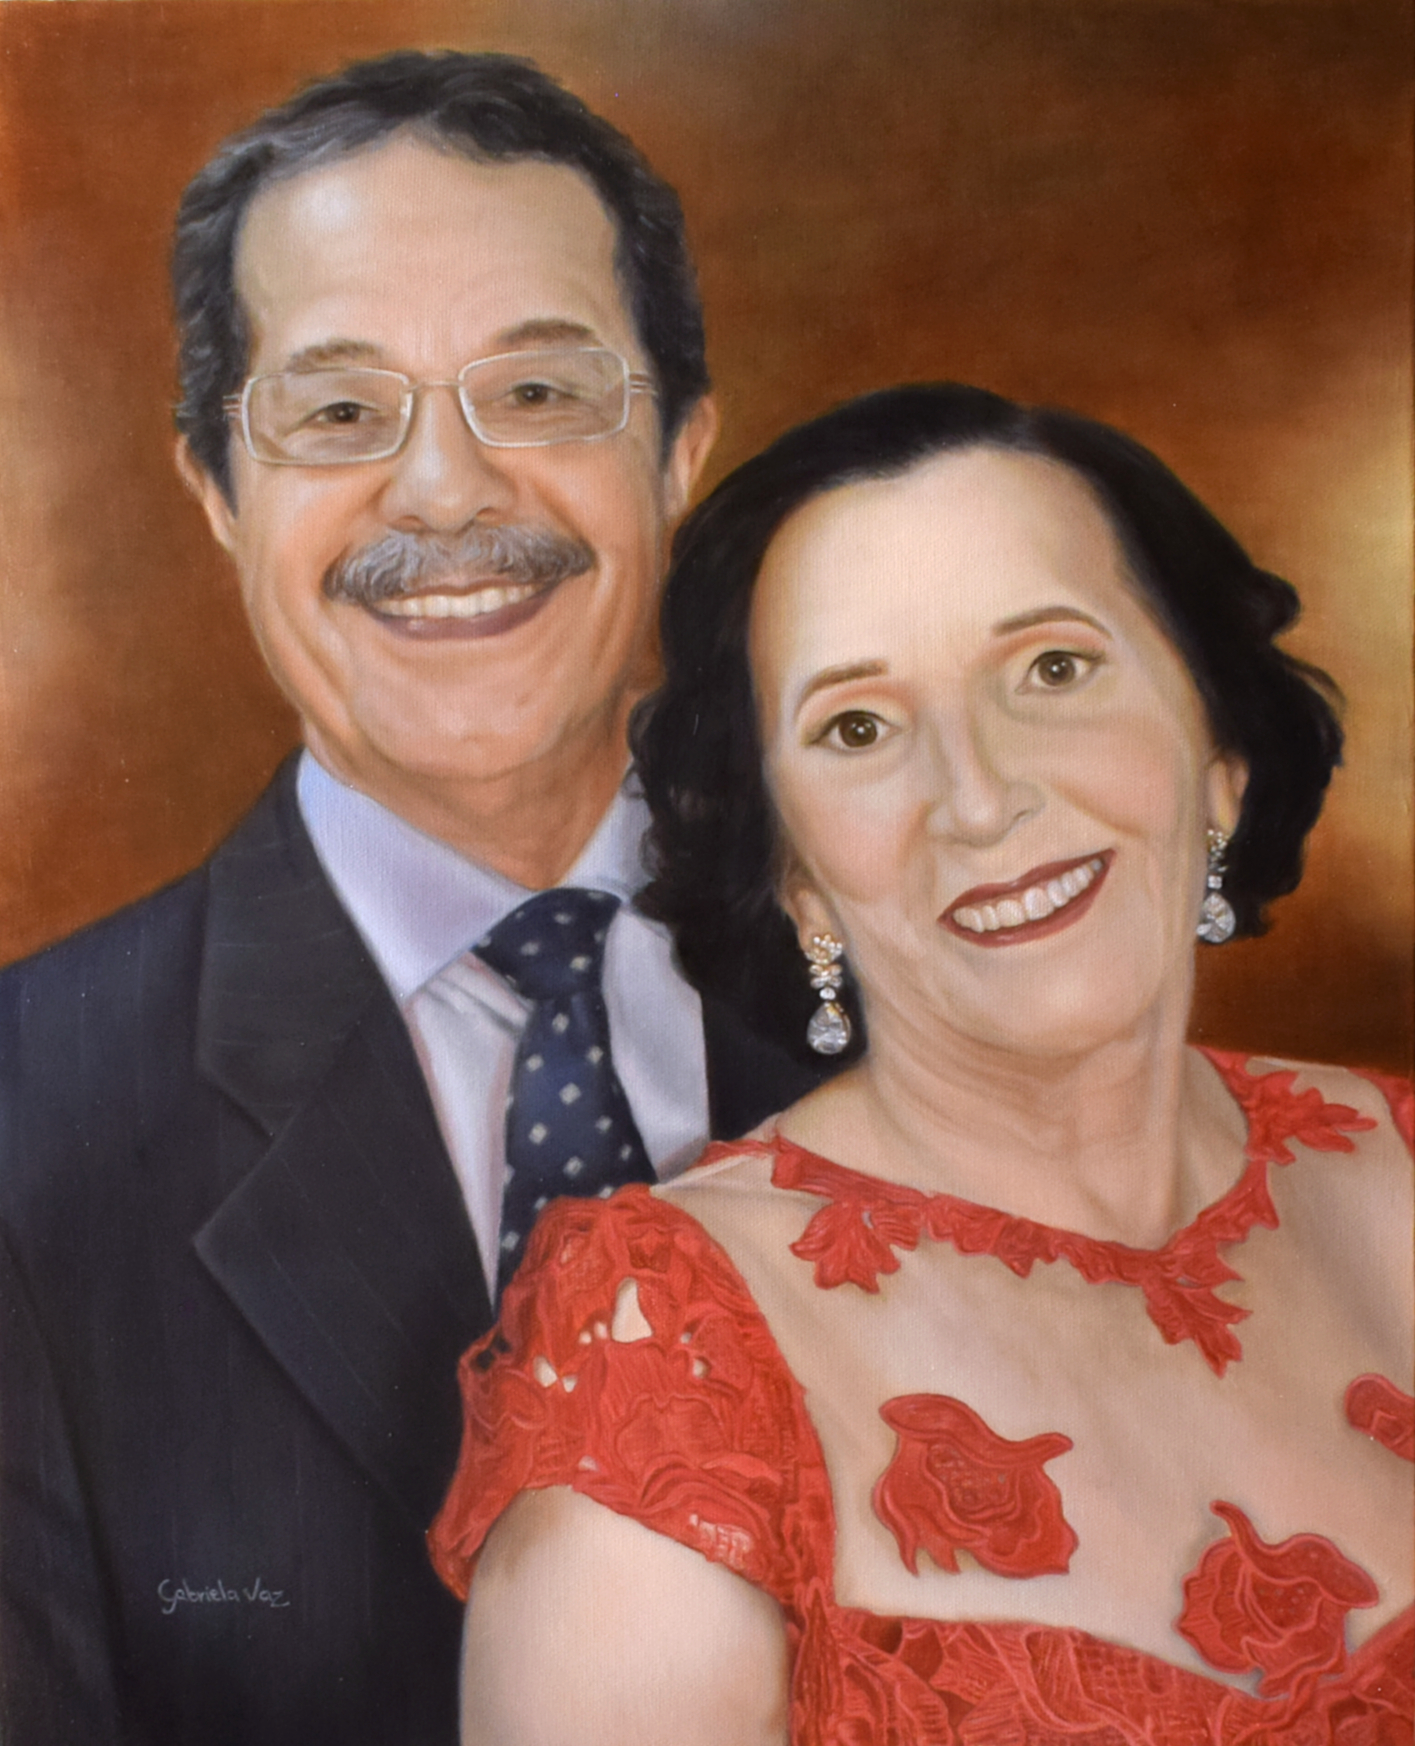 Ana e Joel, oil on canvas, 50 x 40 cm, 2020